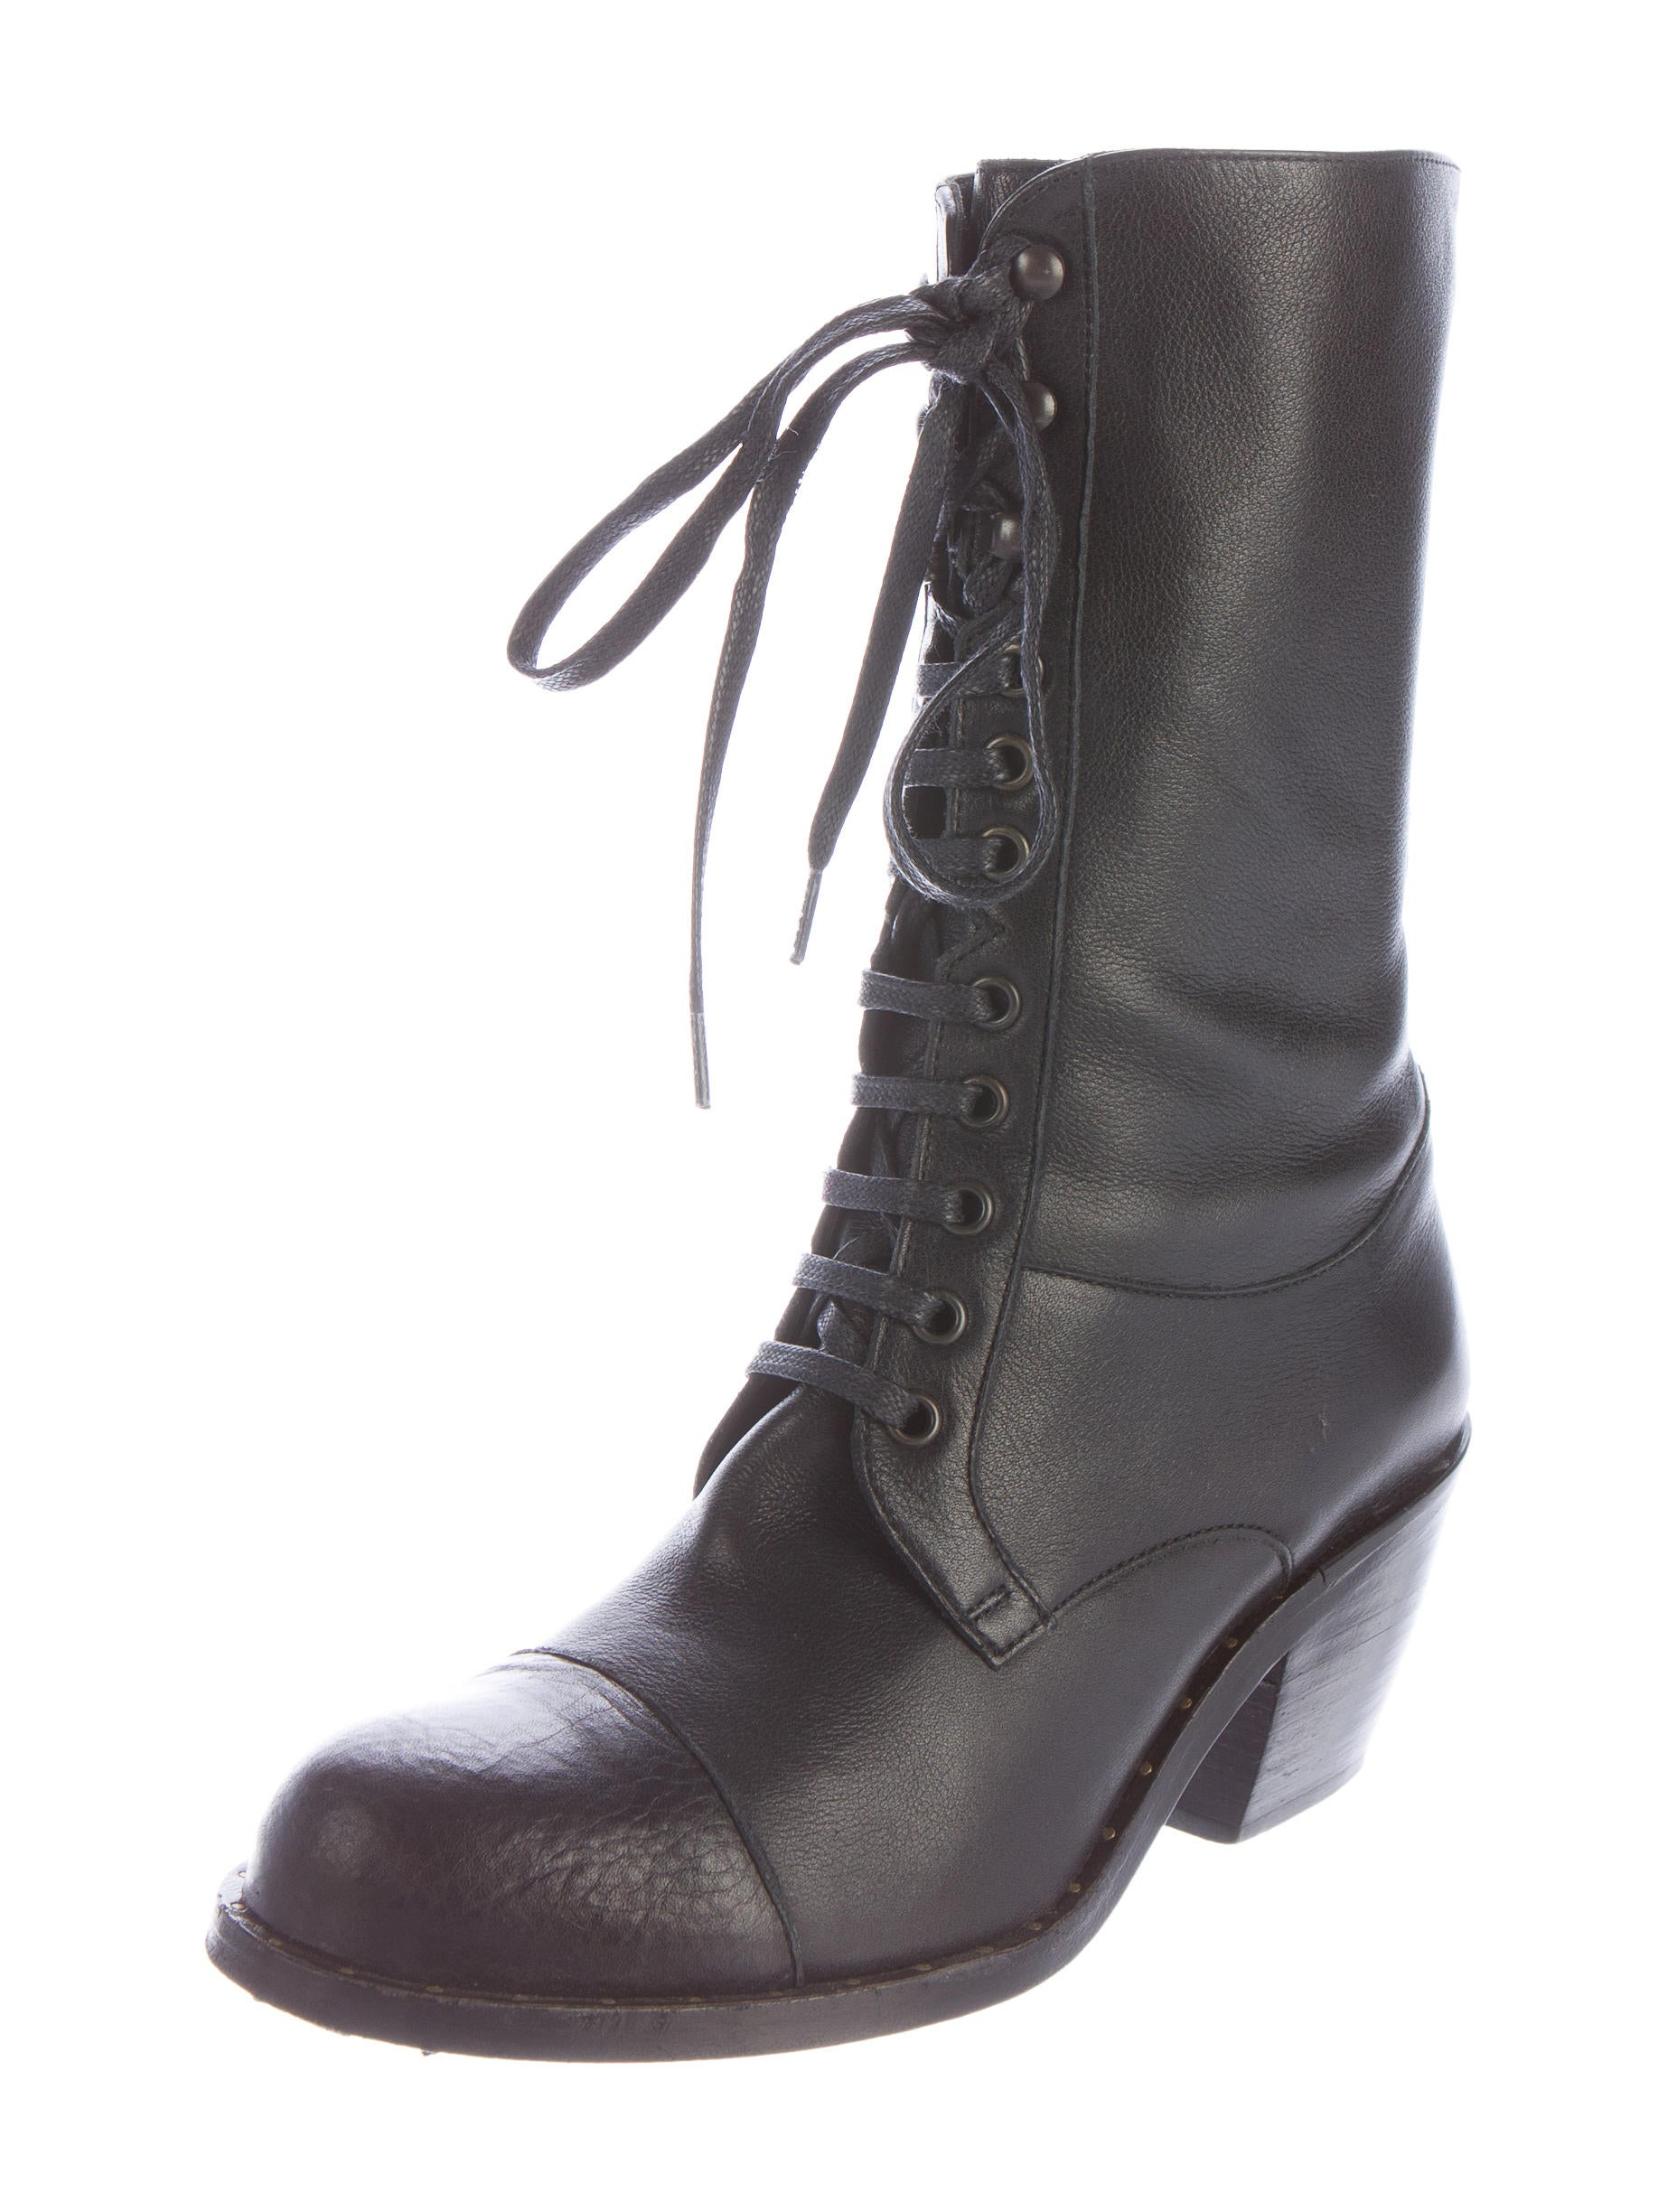 robert clergerie leather lace up ankle boots shoes